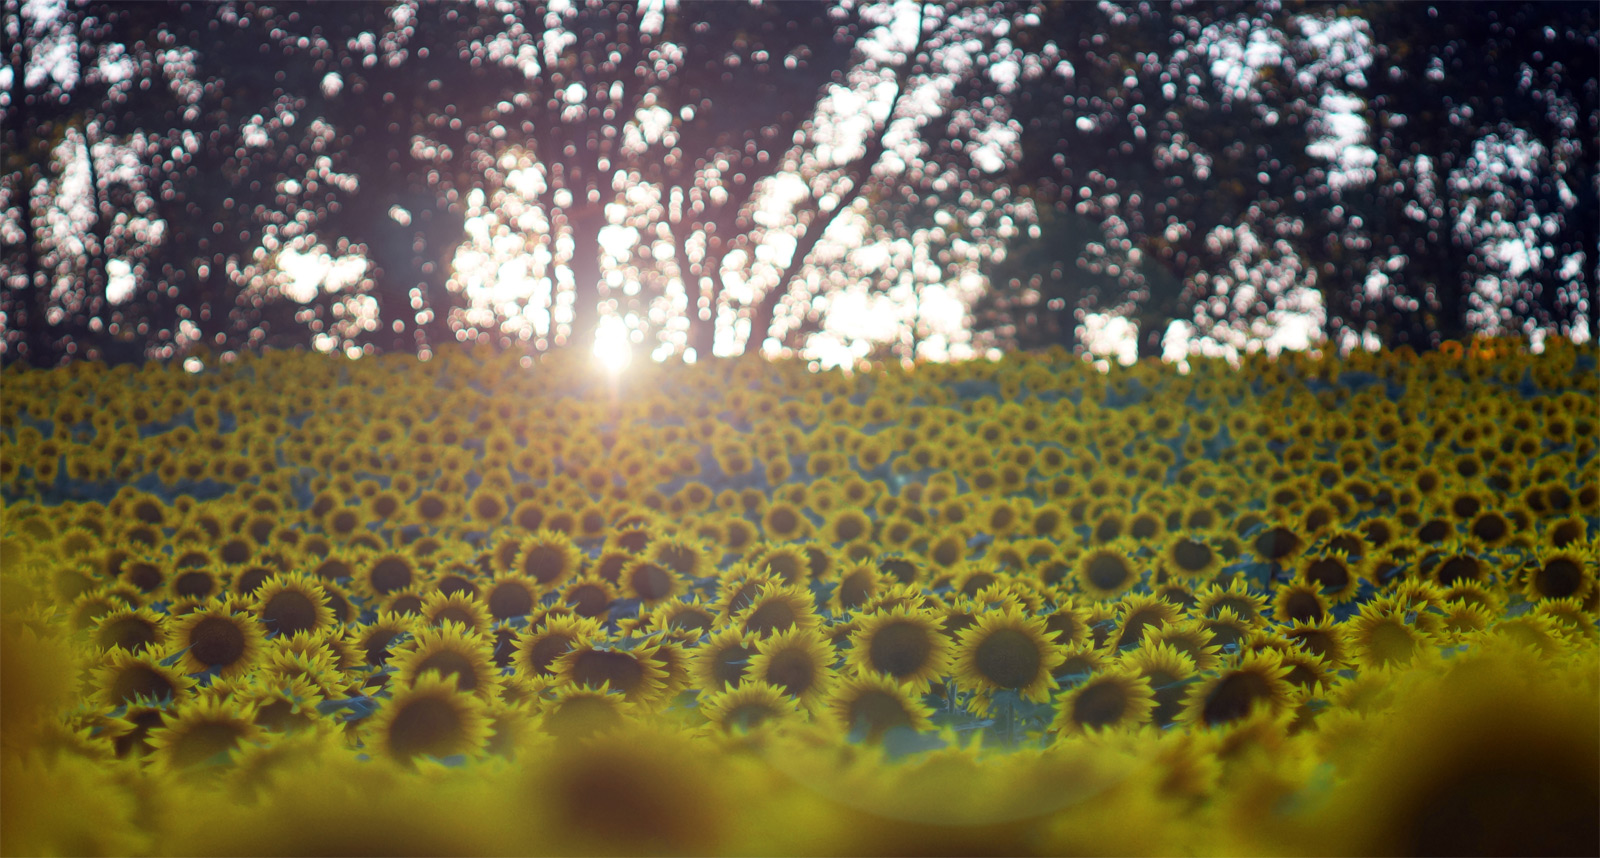 The common, wild sunflower (helianthus annuus) is the official state flower of Kansas.